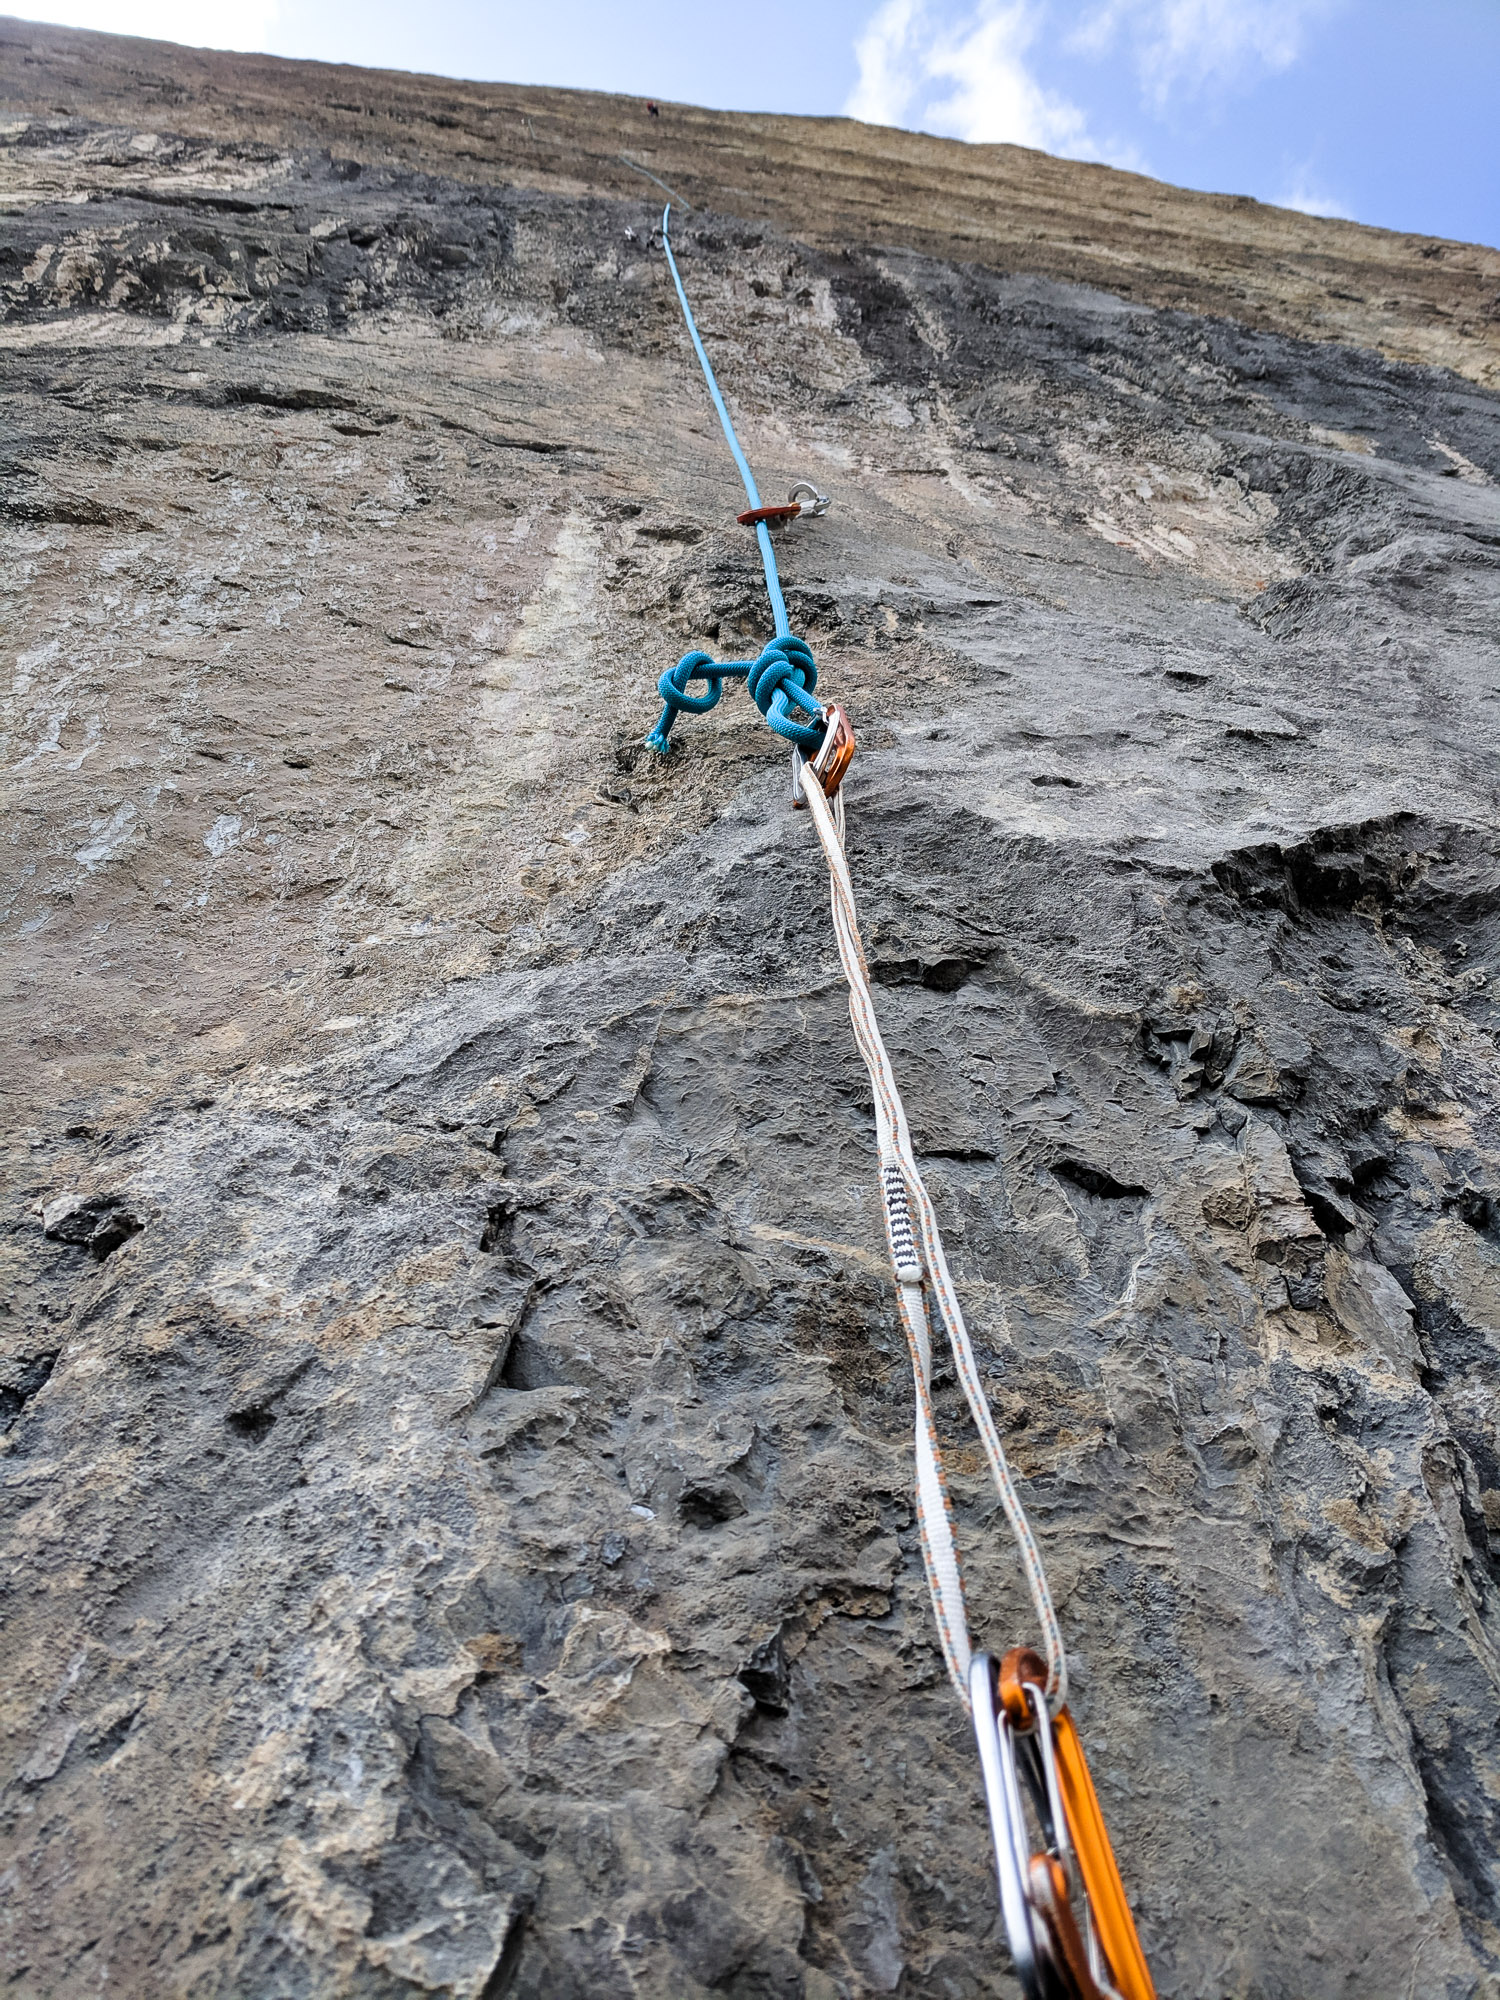 I quested up the first 3 headwall pitches in one rope length the first day. Because we hadn't extended the draws yet, the rope drag was heinous. Mike wasn't sure I'd make it so he extended the rope. Turns out we had just enough rope with the 90m.